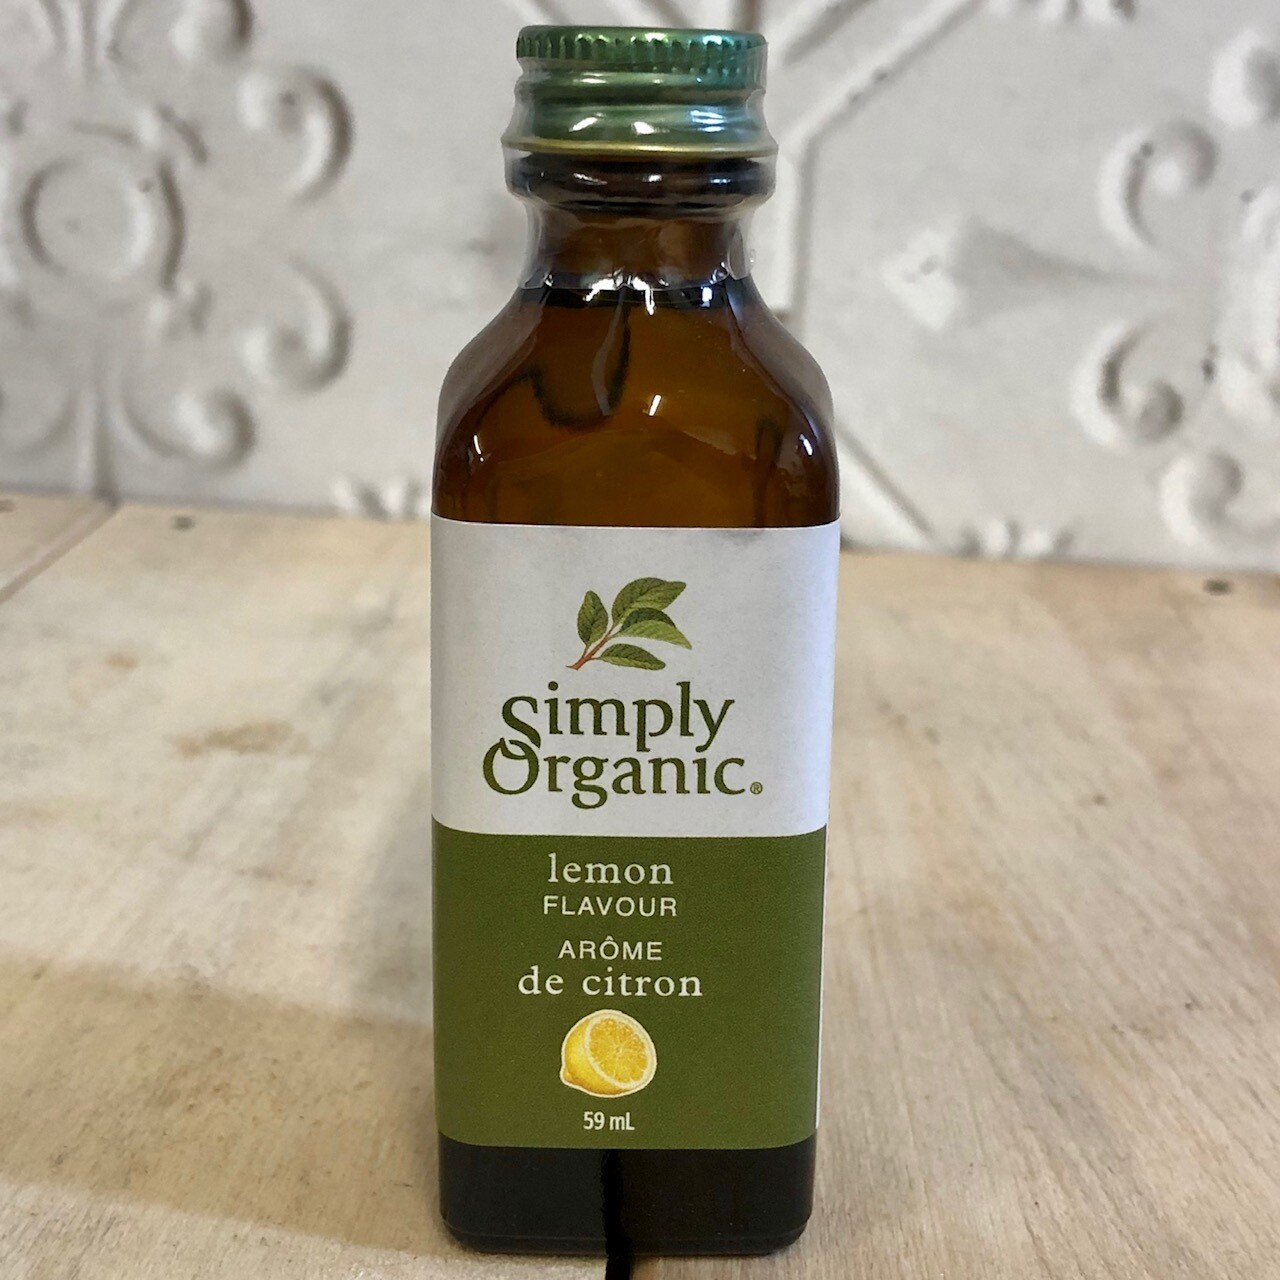 SIMPLY ORGANIC Lemon Flavour 59ml